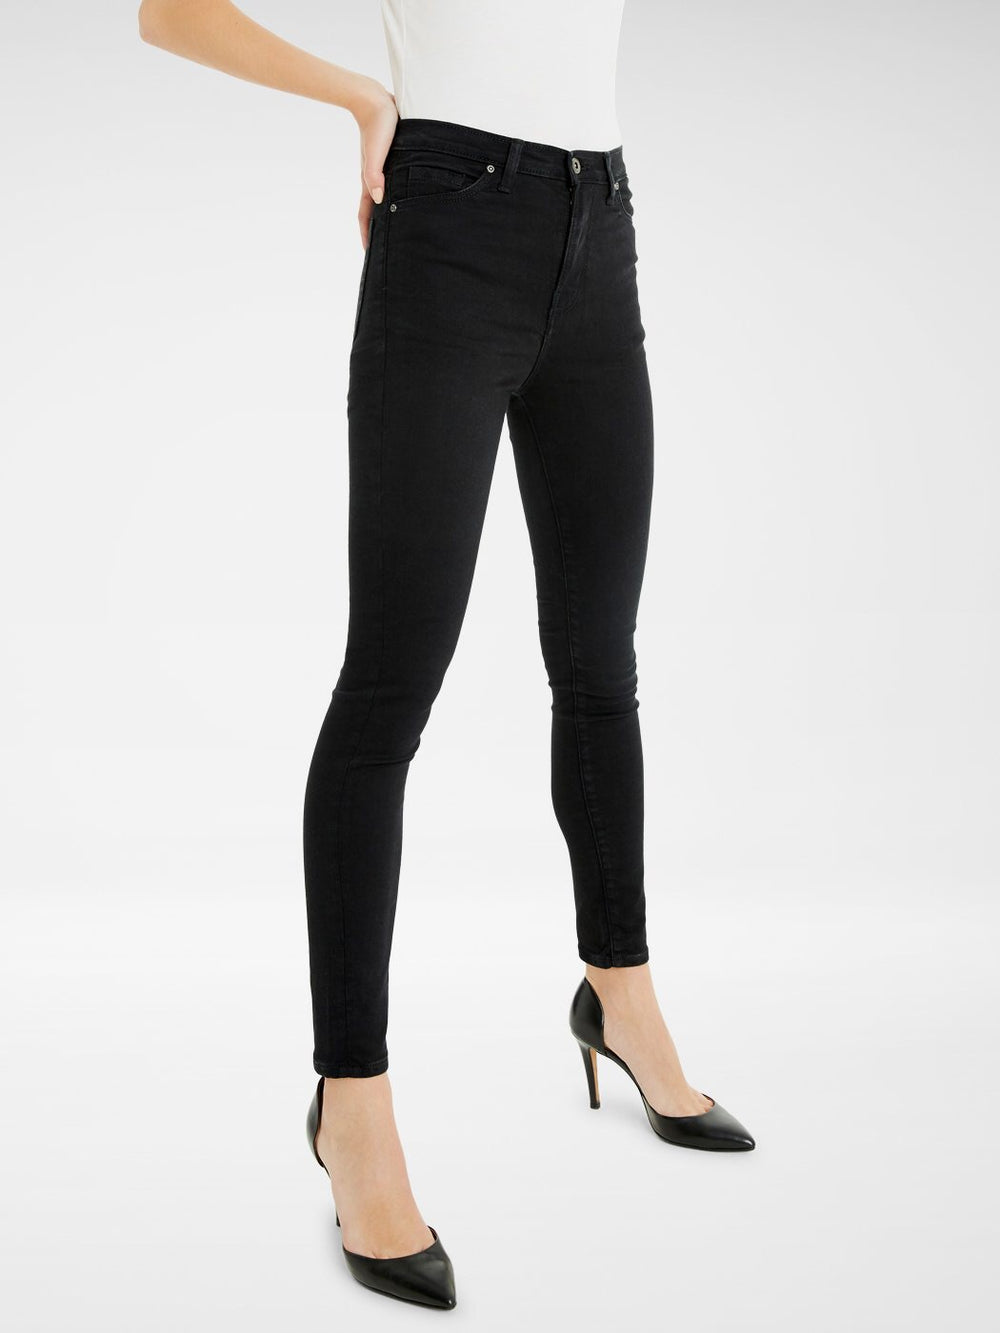 Side front view of the Outland Denim Harriet Jean in Black Ankle Length